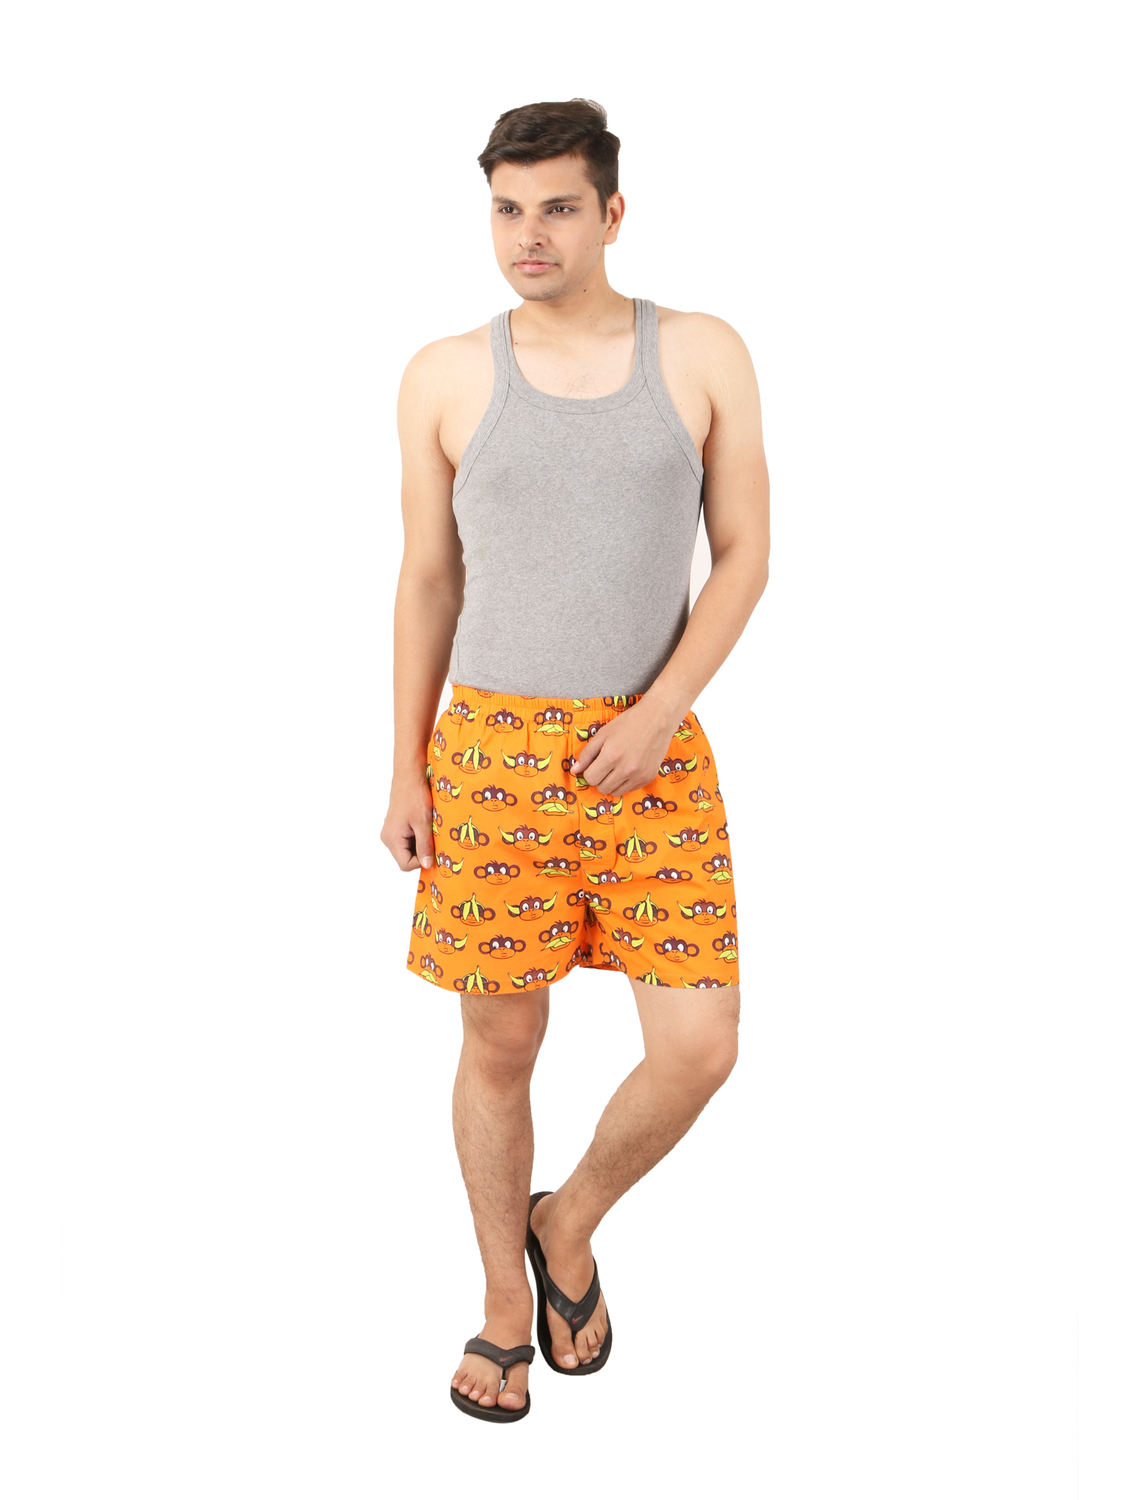 Hungry Monkey Men's Cotton Boxers